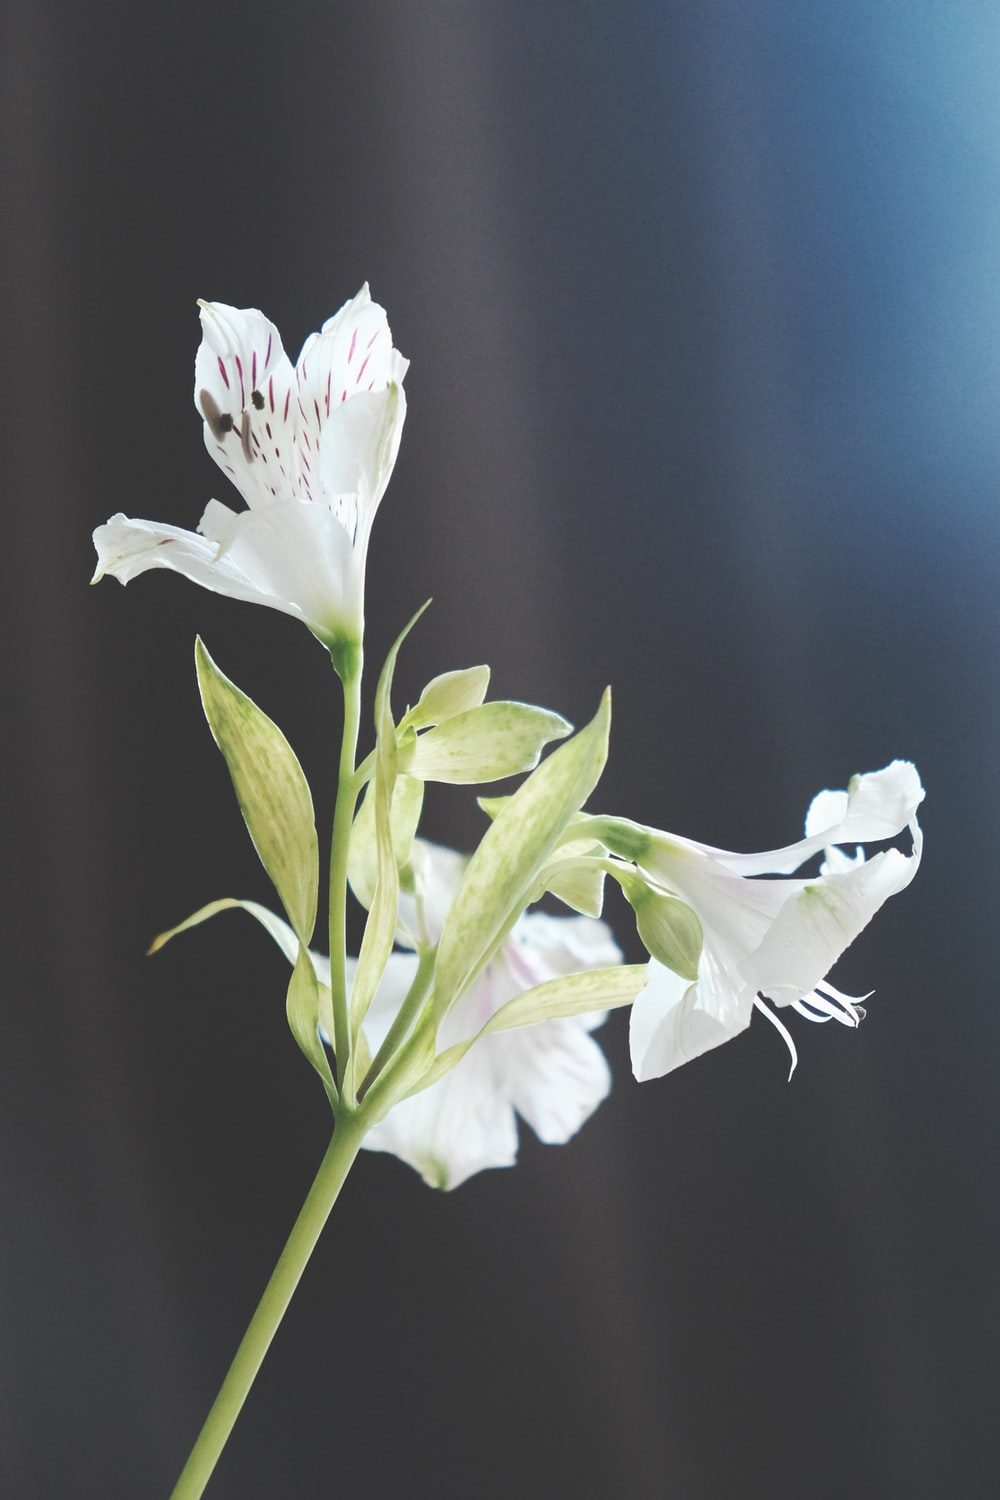 White Lily Pictures Download Free Images On Unsplash